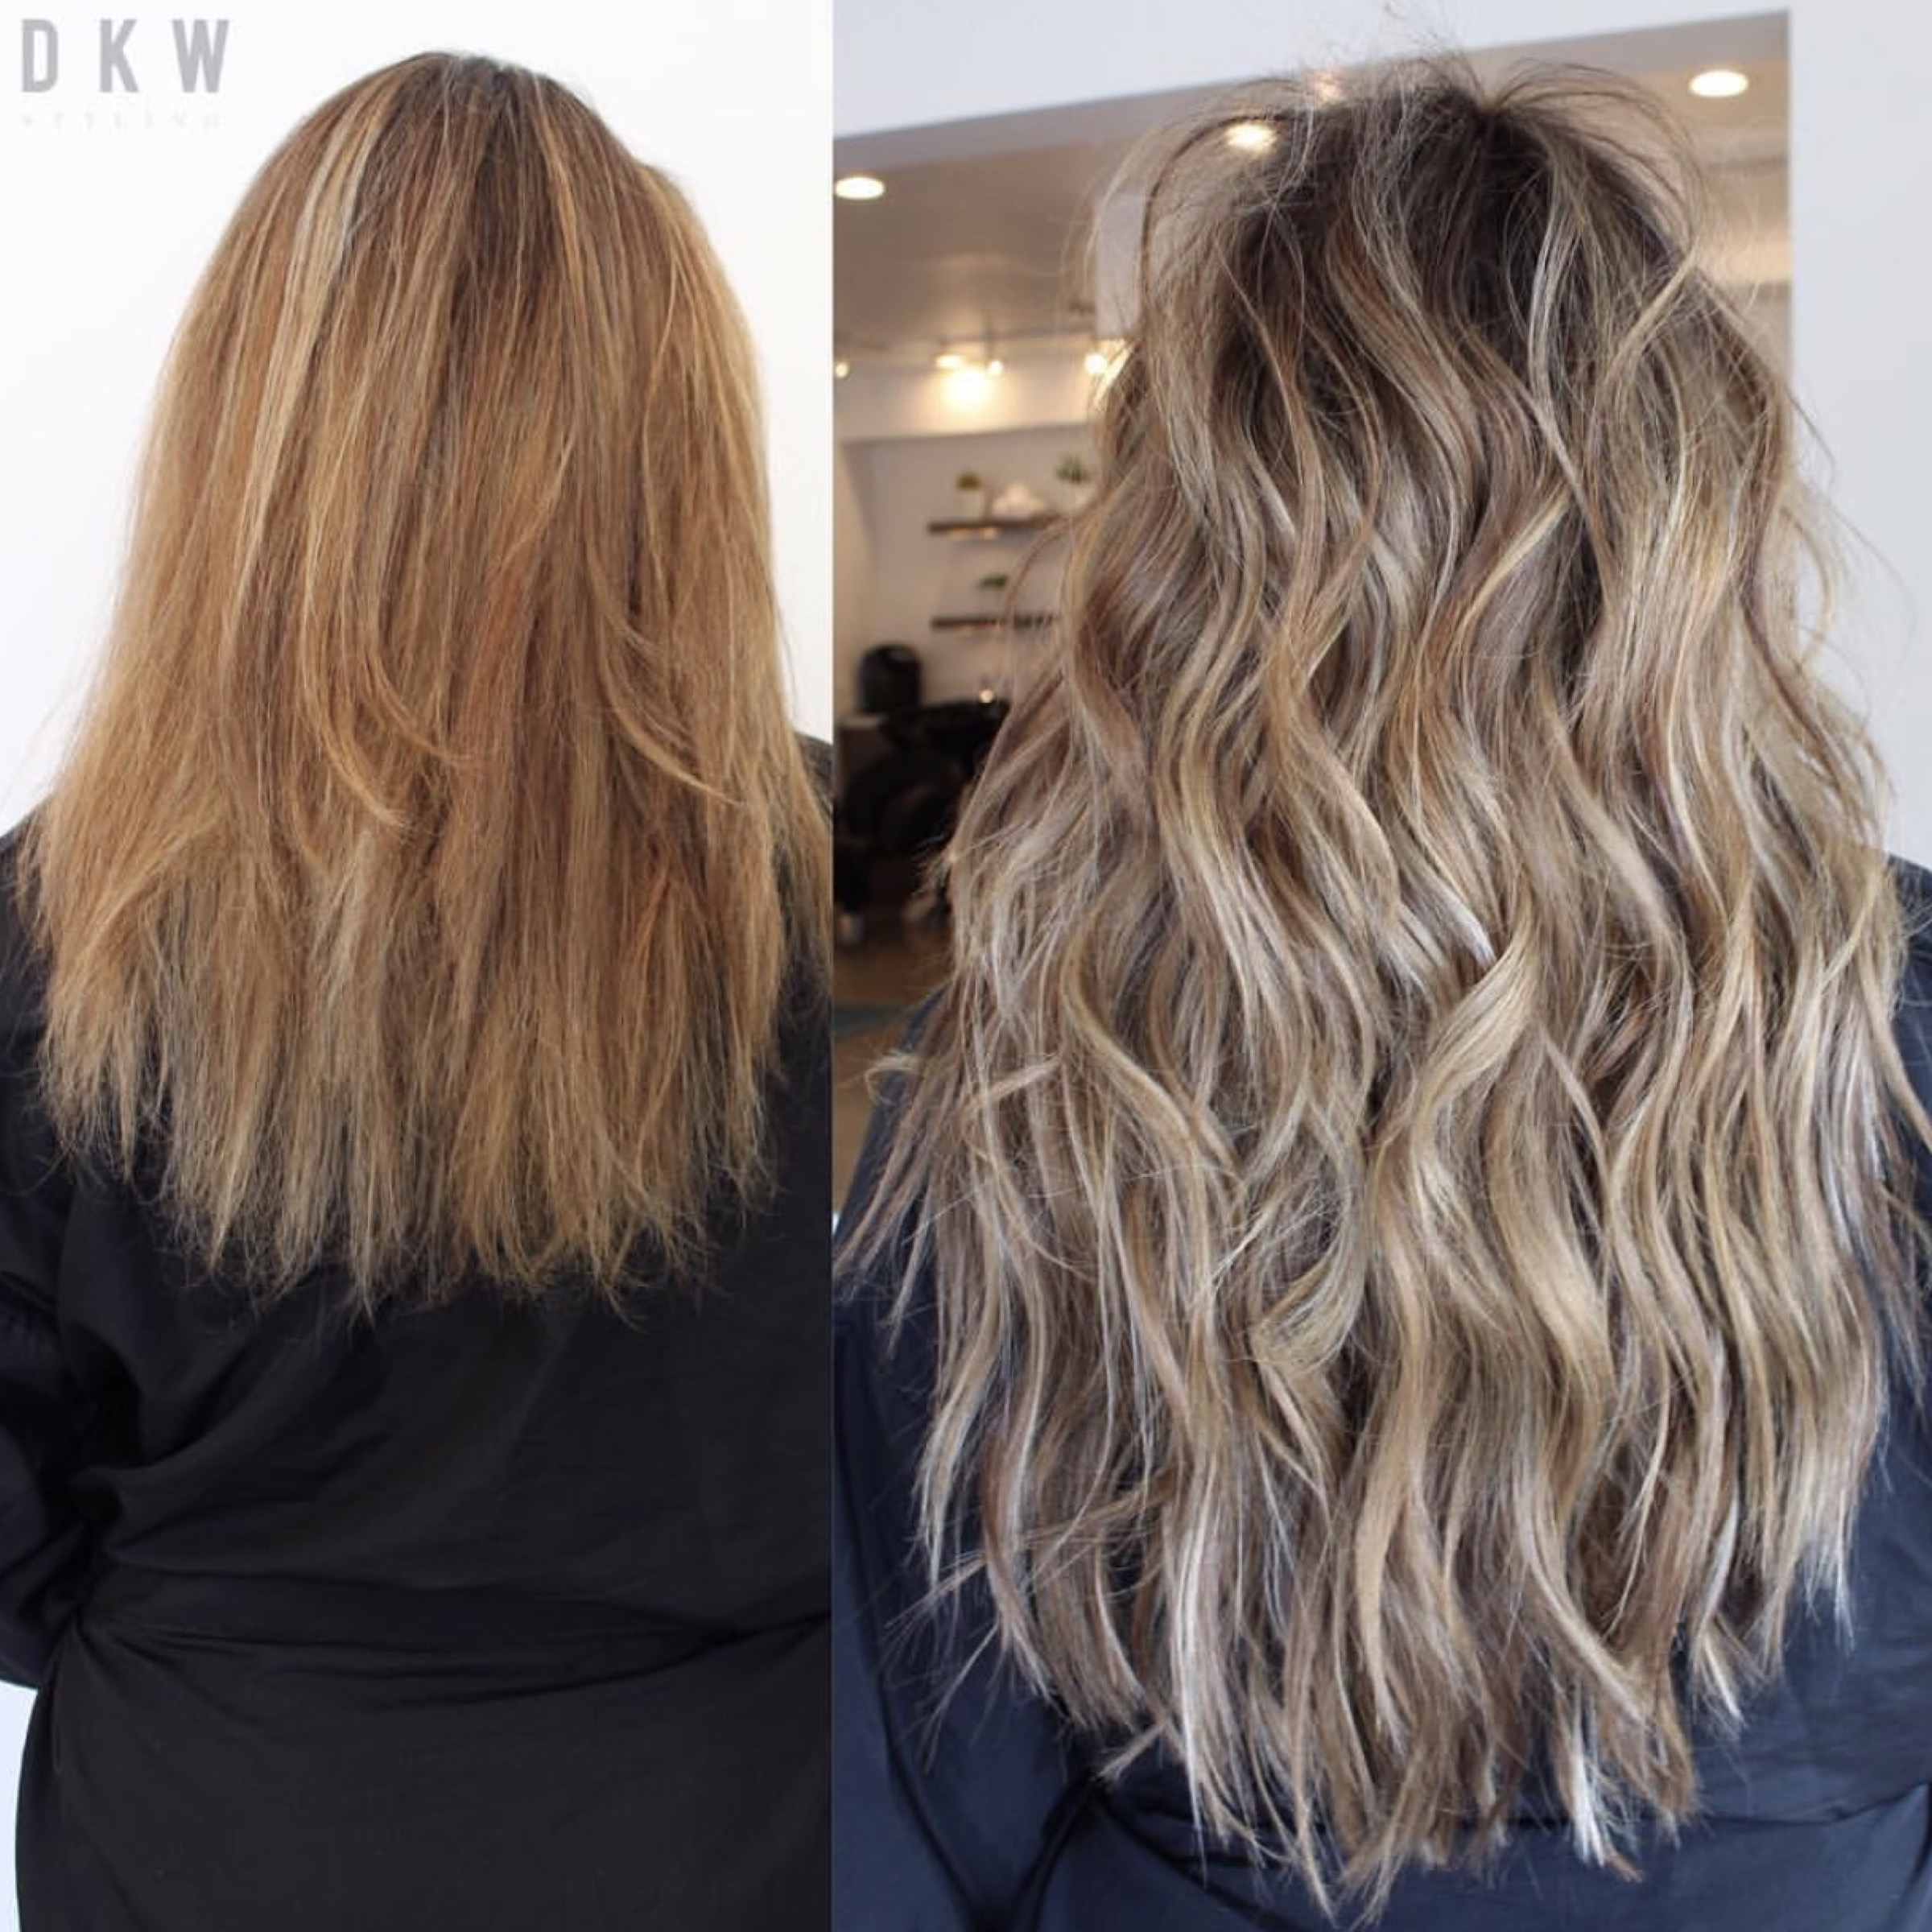 Hair Color Formulas - NBR Hair Extensions